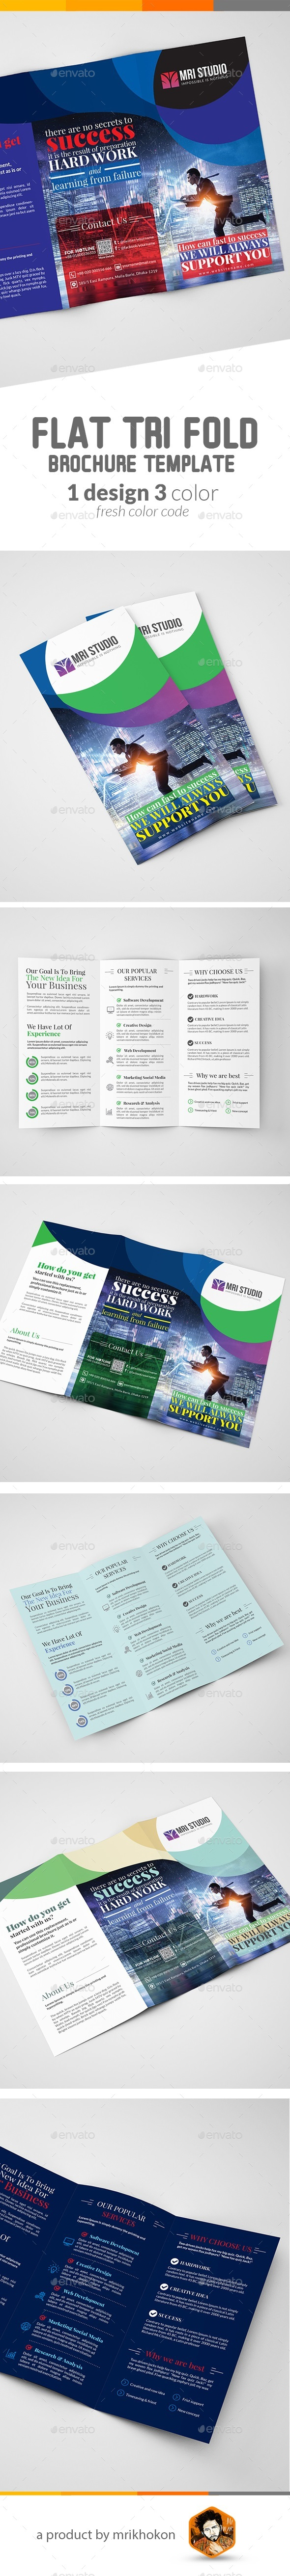 Creative Tri fold Brochure - Corporate Brochures